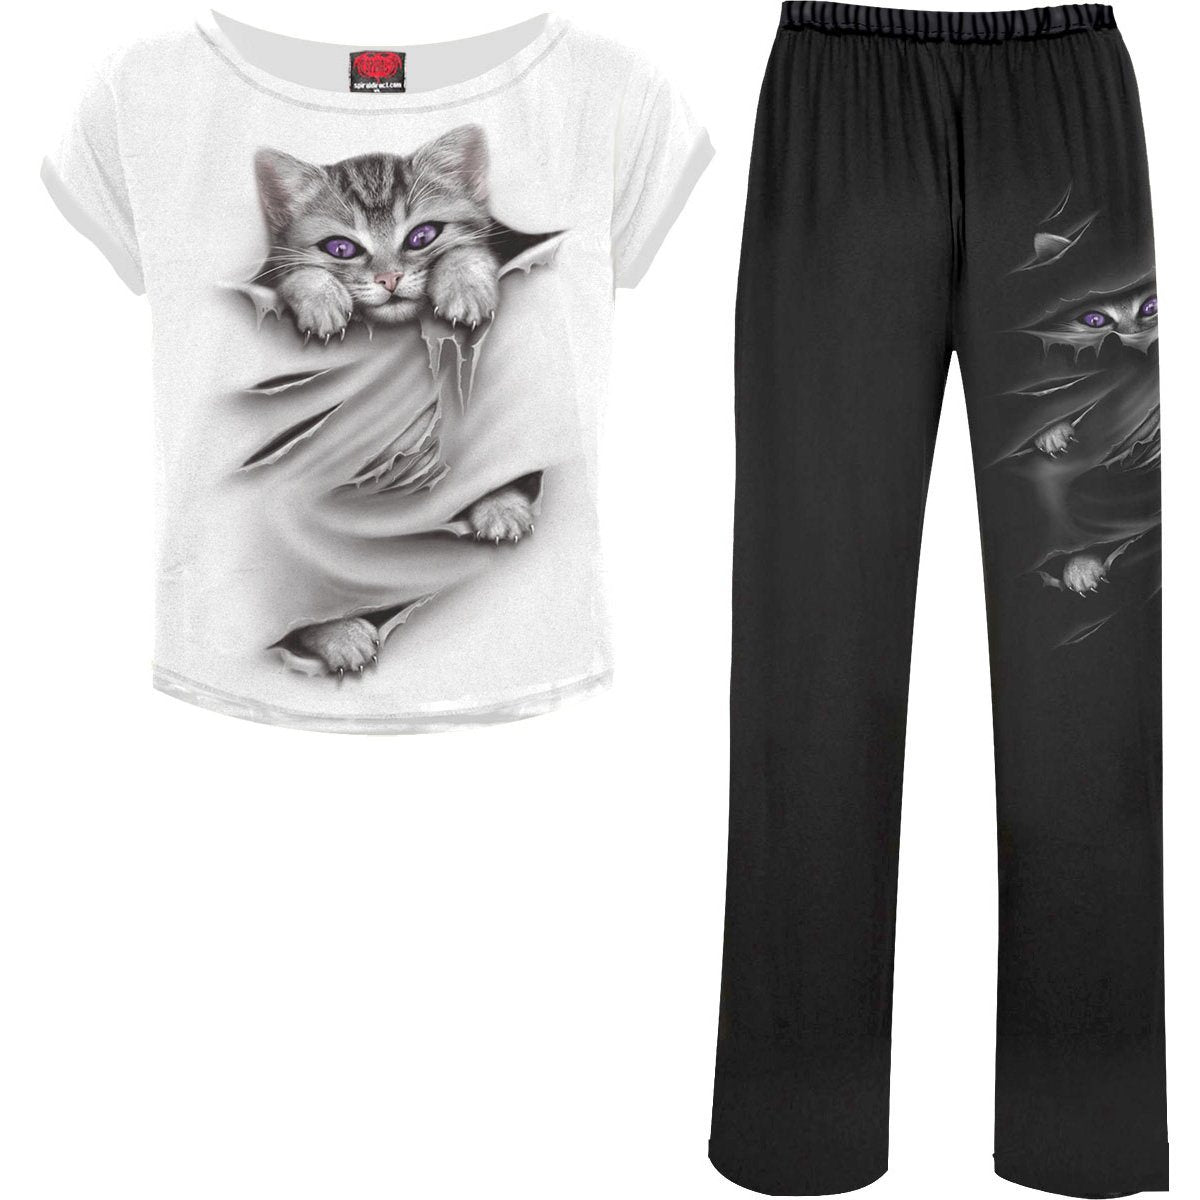 Kitten Eyes Women's 4-Piece Pajama Set